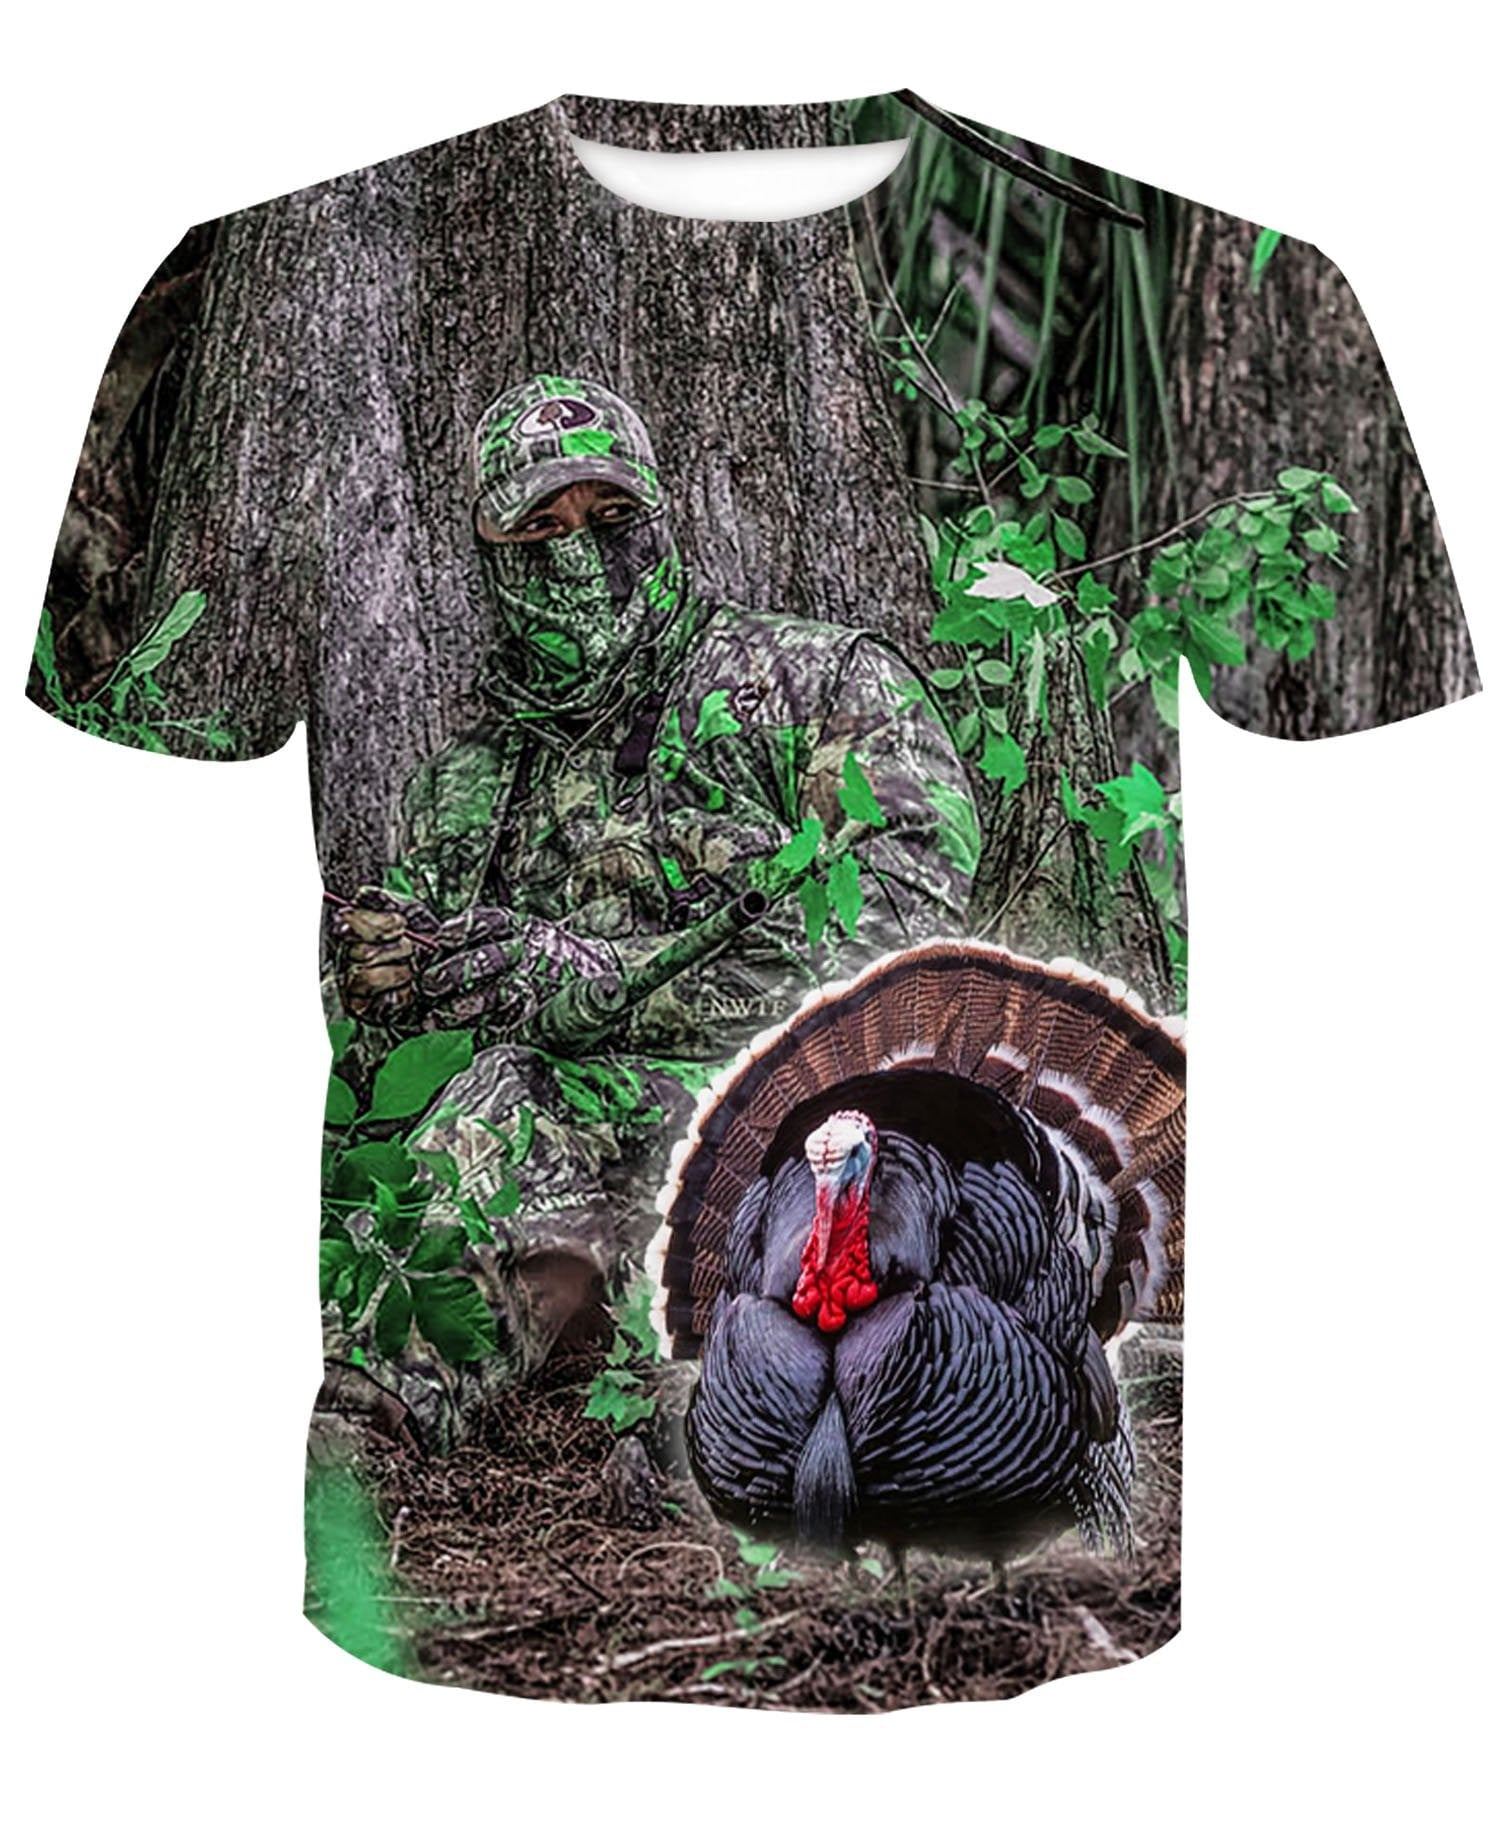 Turkey Hunting T-Shirt